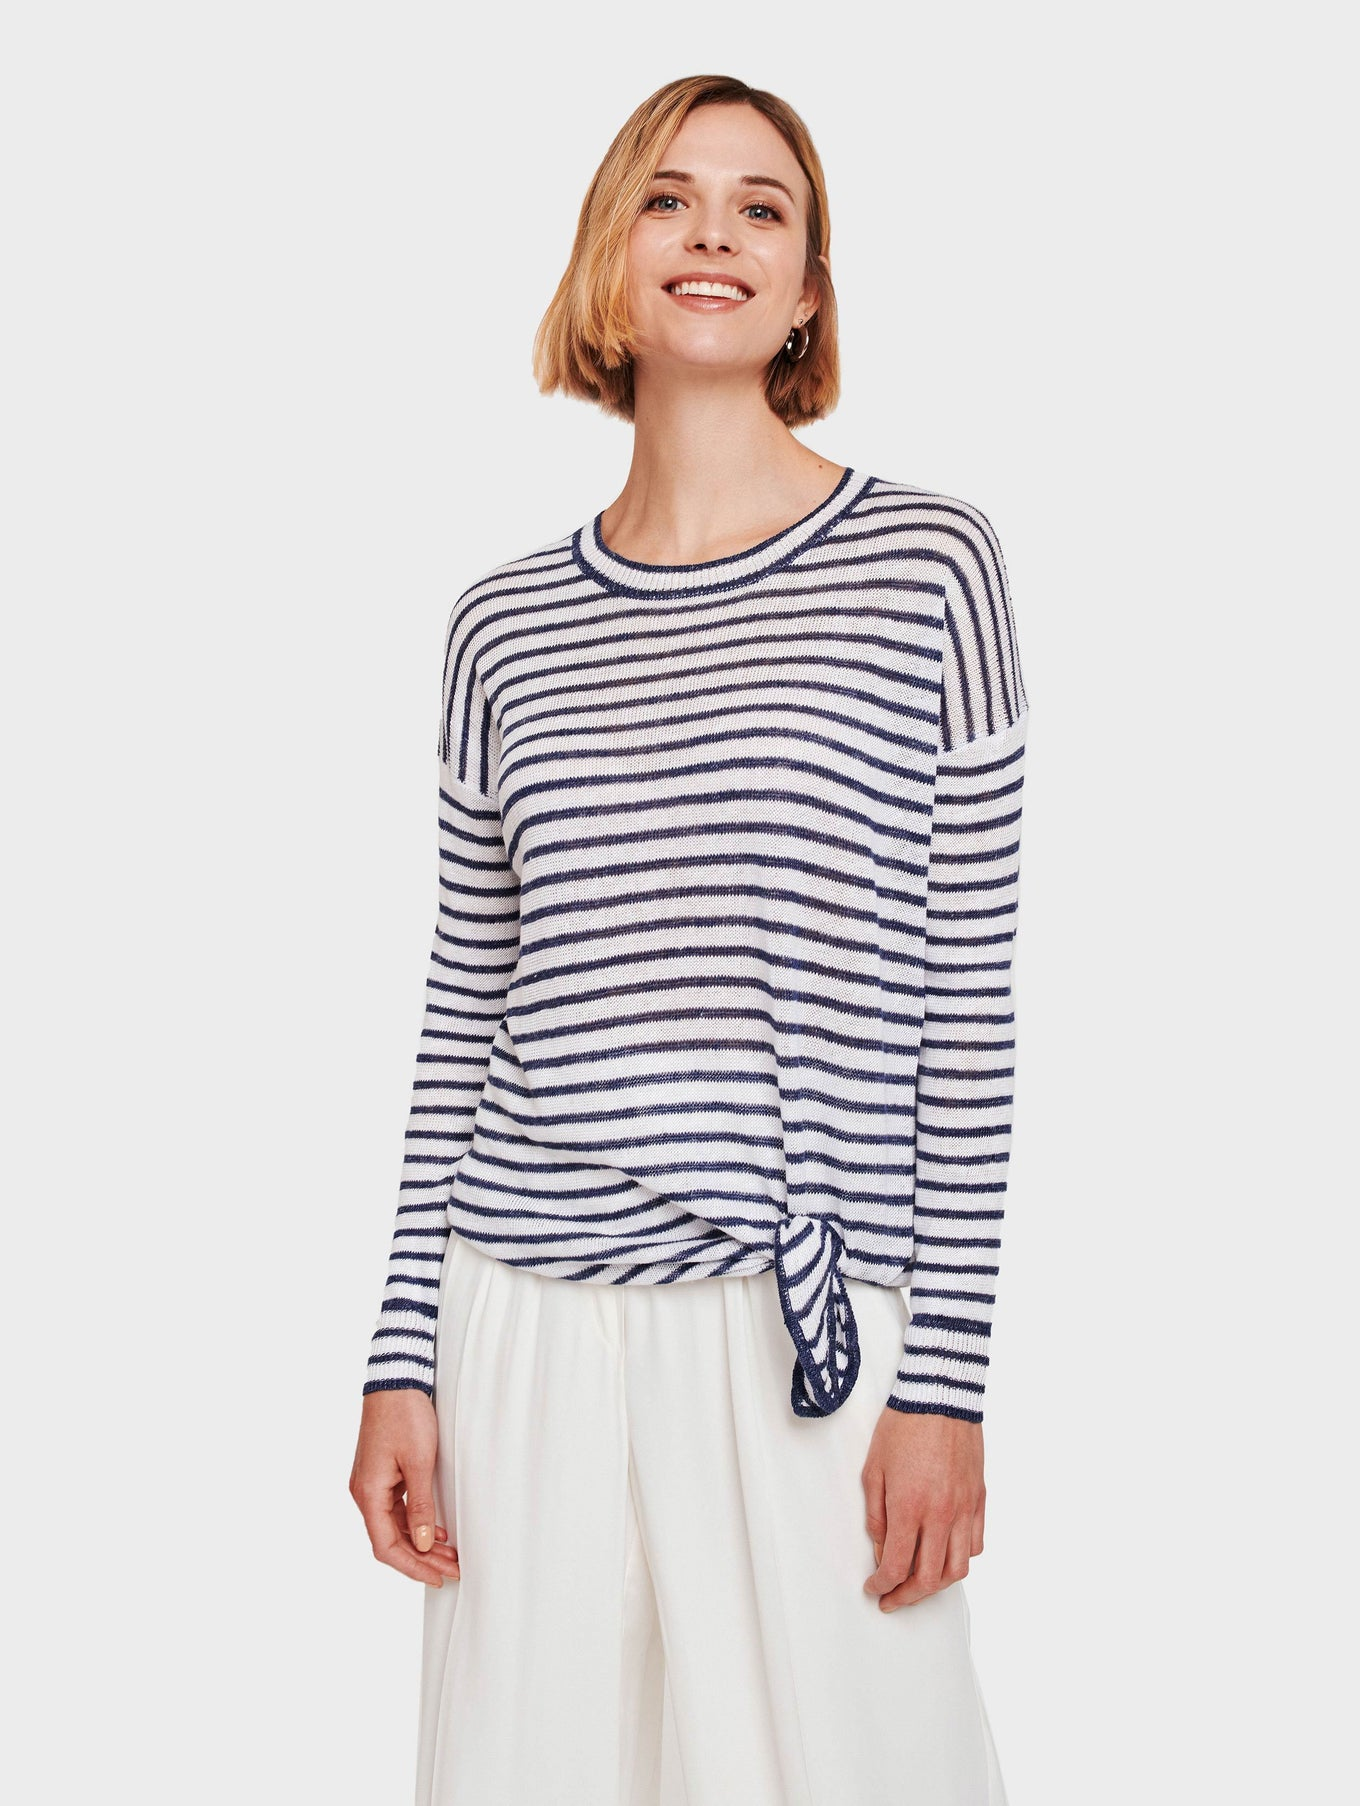 Linen Knotted Stripe Crewneck - White/Denim - Image 1